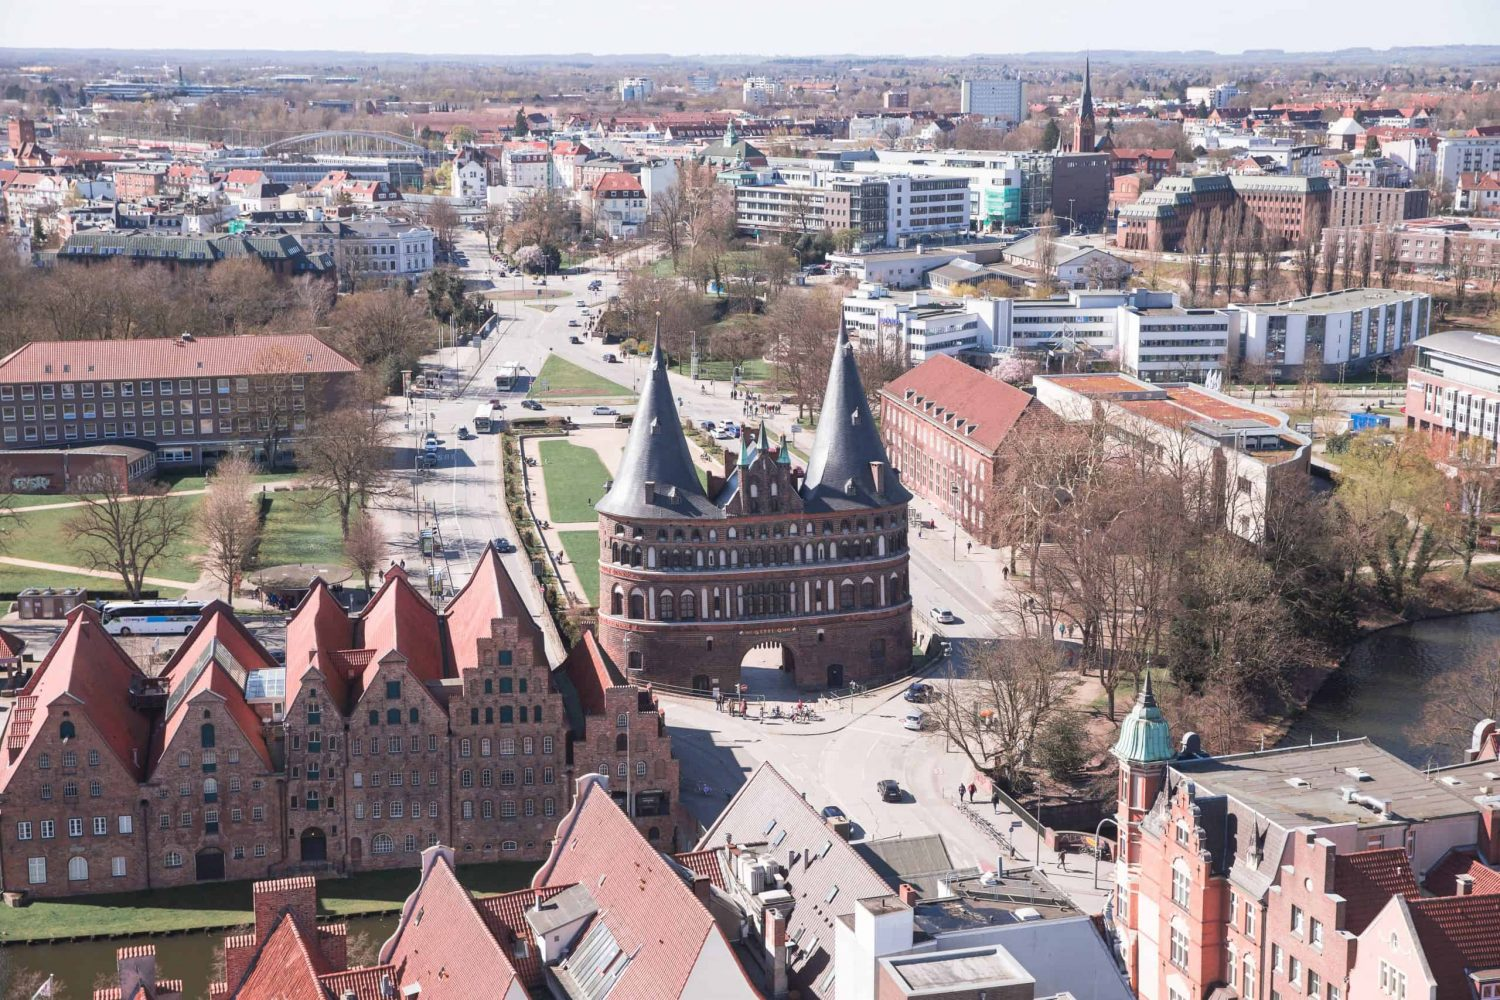 View of Holstentor, Lübeck's city gate, from St. Peter's Church. Lübeck is one of the best day trips from Hamburg!